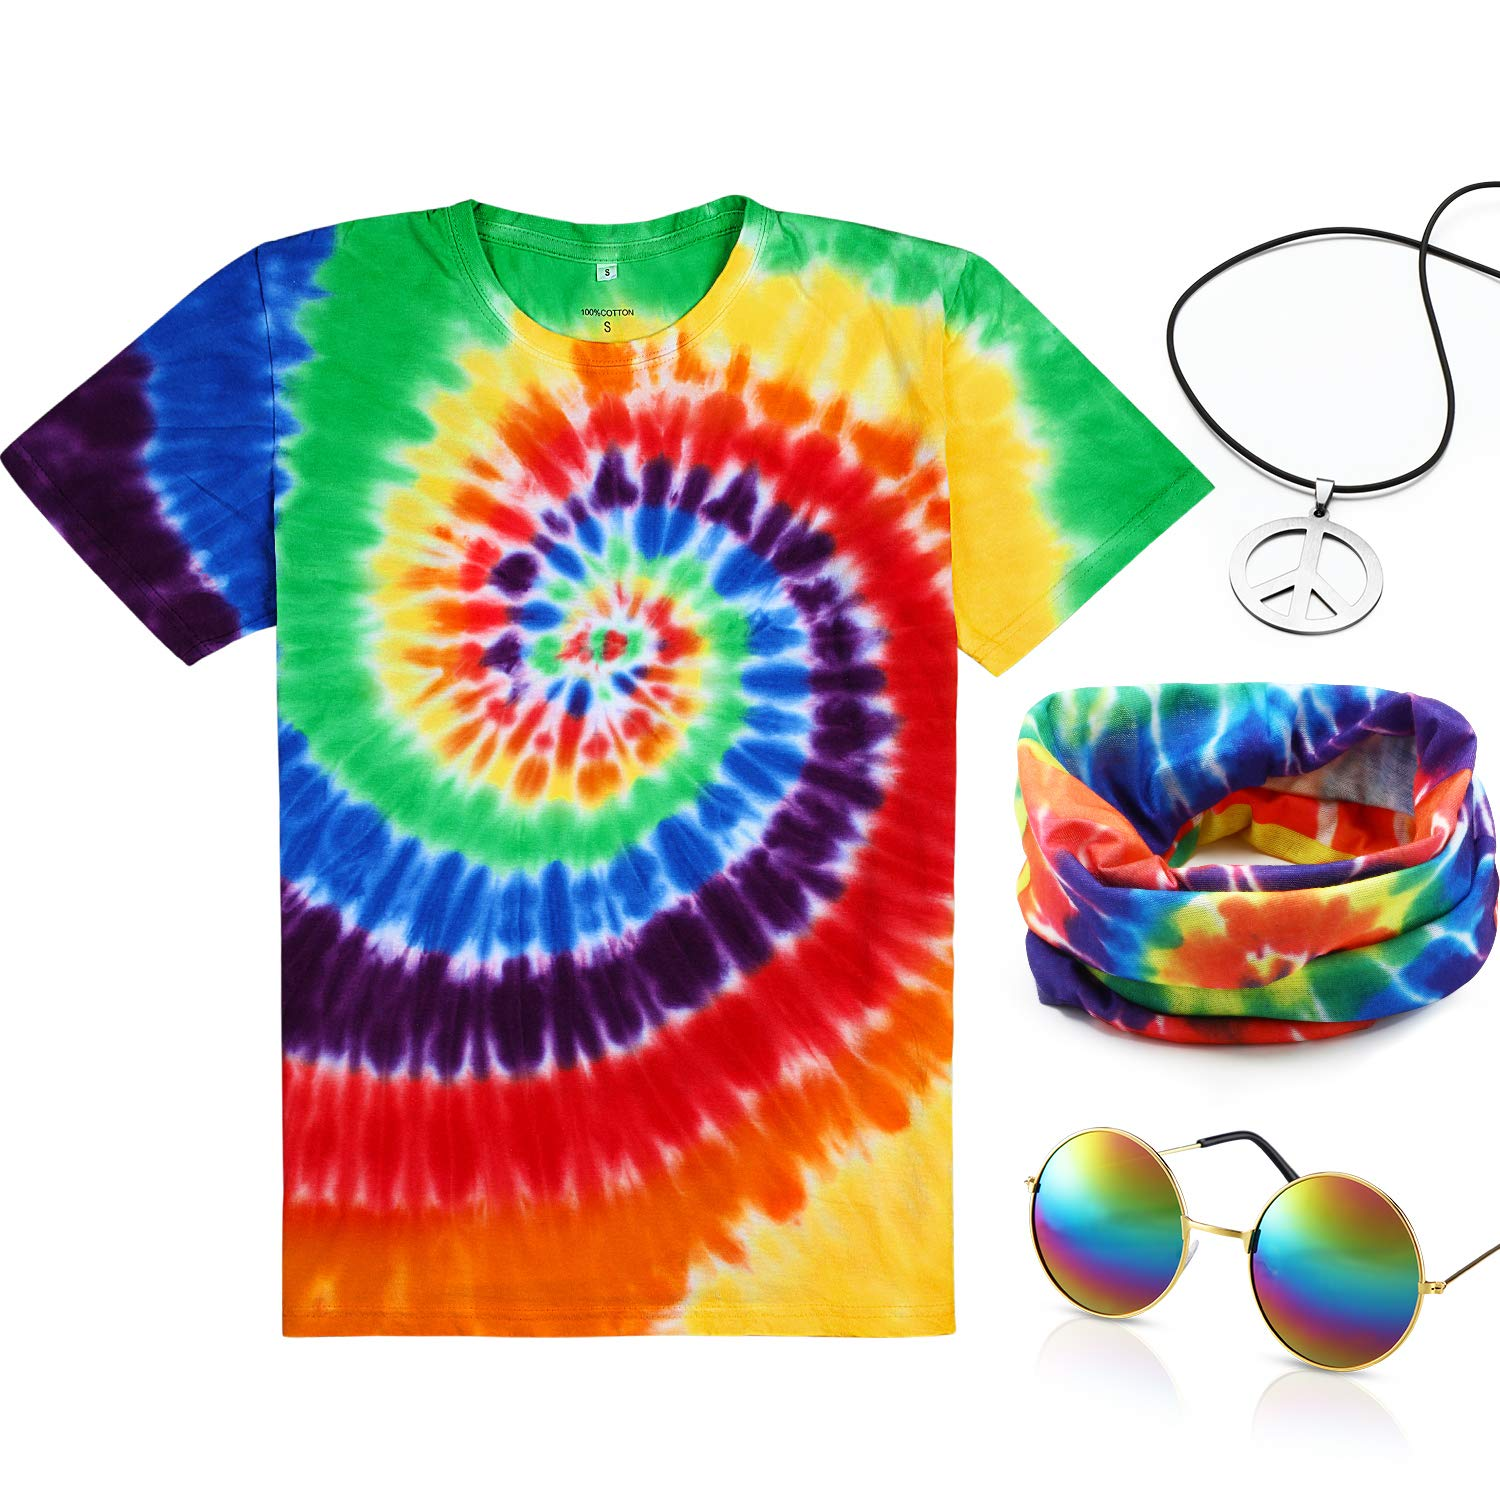 1960s Mens Shirts | 60s Mod Shirts, Hippie Shirts 4 Pieces Hippie Costume Set Include Colorful Tie-Dye T-Shirt Peace Sign Necklace Headband and Sunglasses for Theme Parties $23.99 AT vintagedancer.com